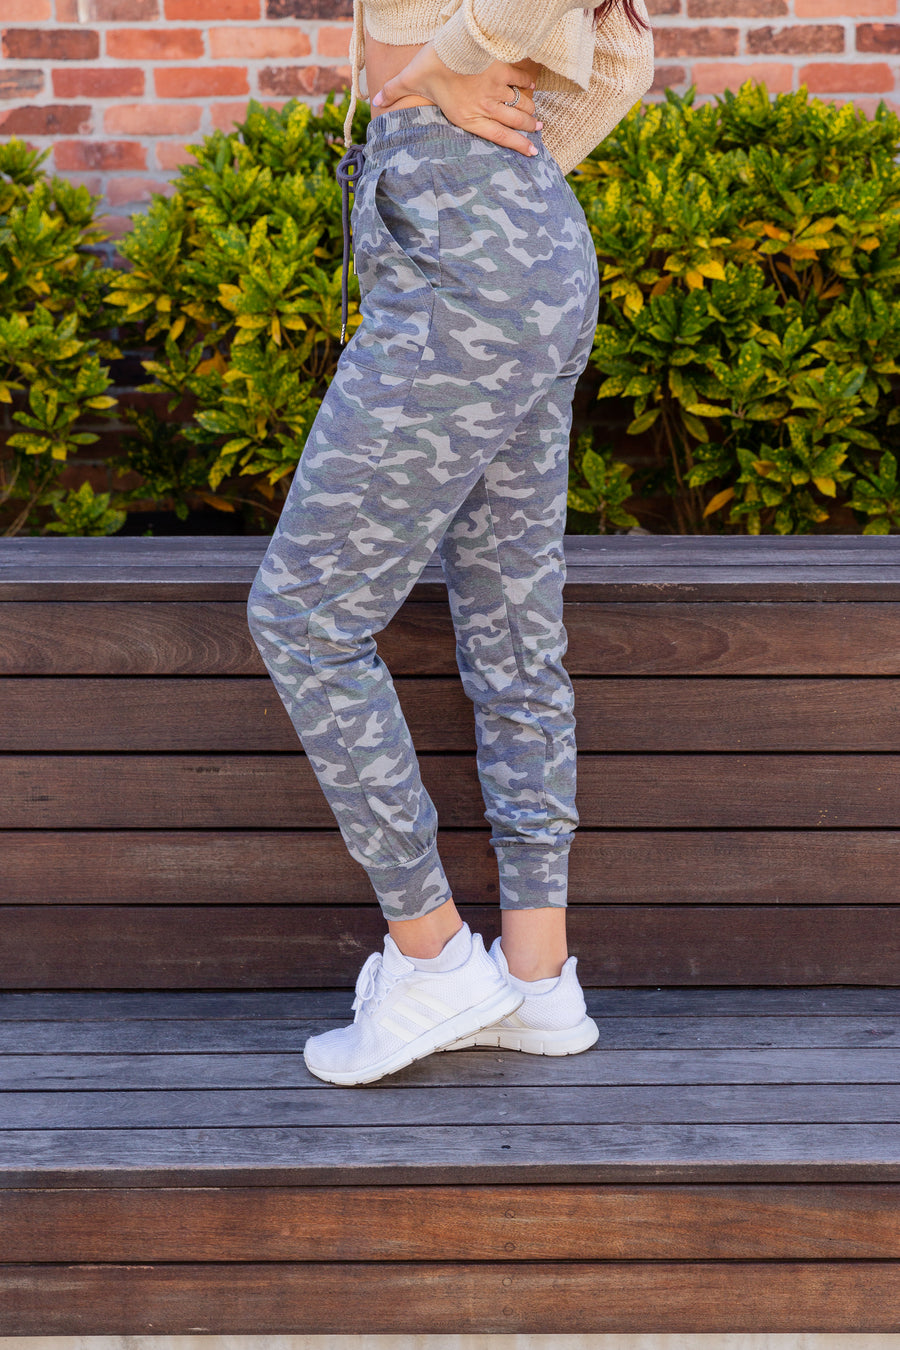 These heathered camo print joggers have a drawstring waist next to side pockets and go into comfortable fit skinny pant legs with a banded ankle cuff.